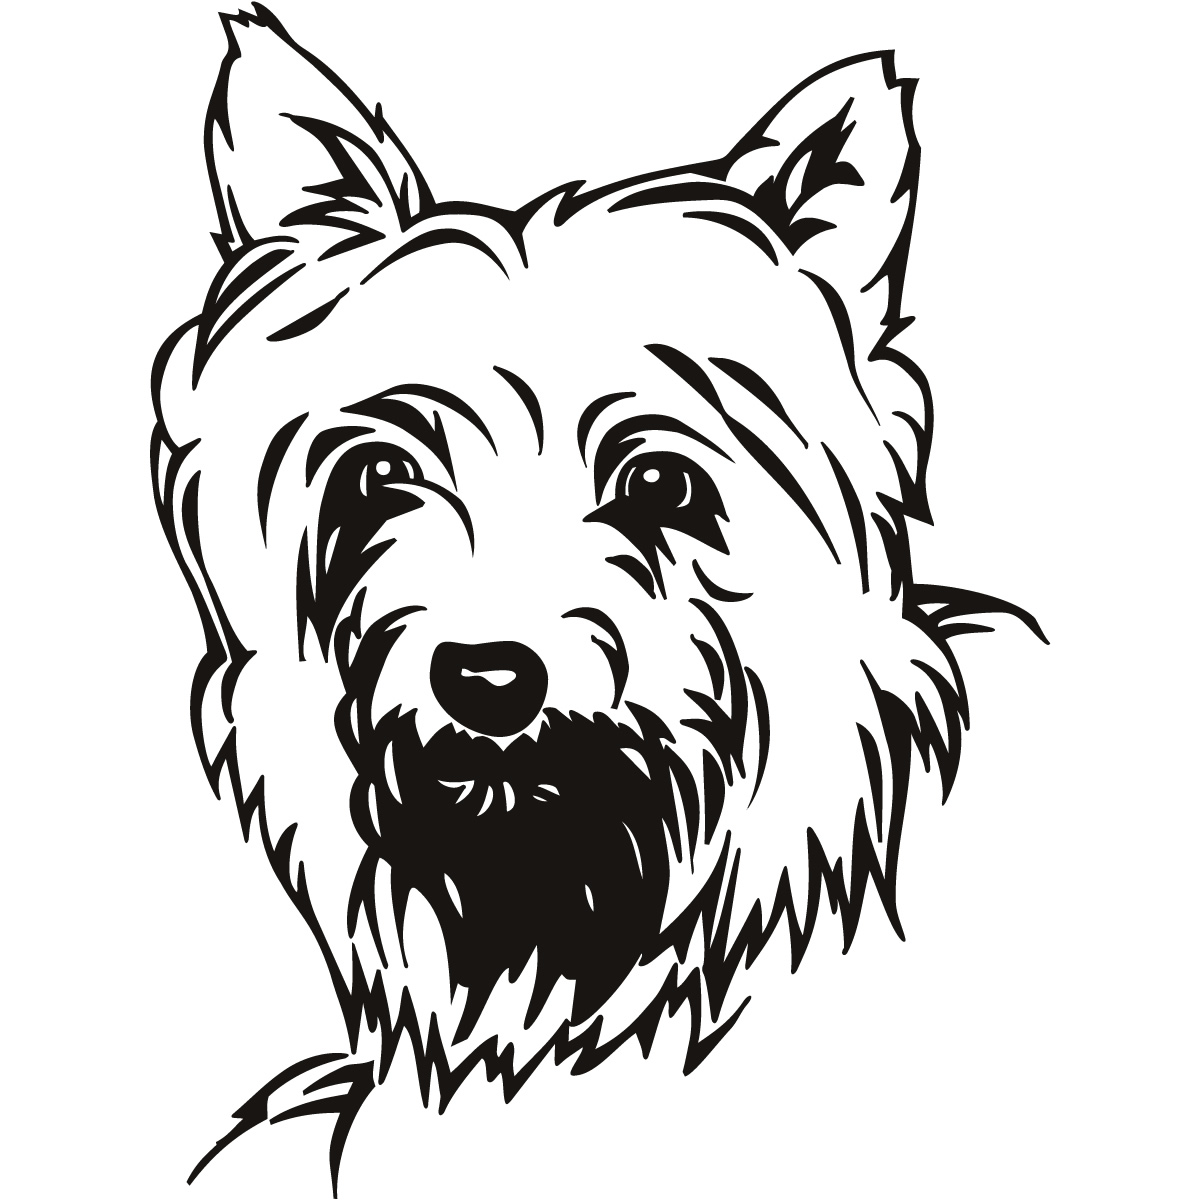 Yorkie Poo Coloring Pages - Coloring Pages